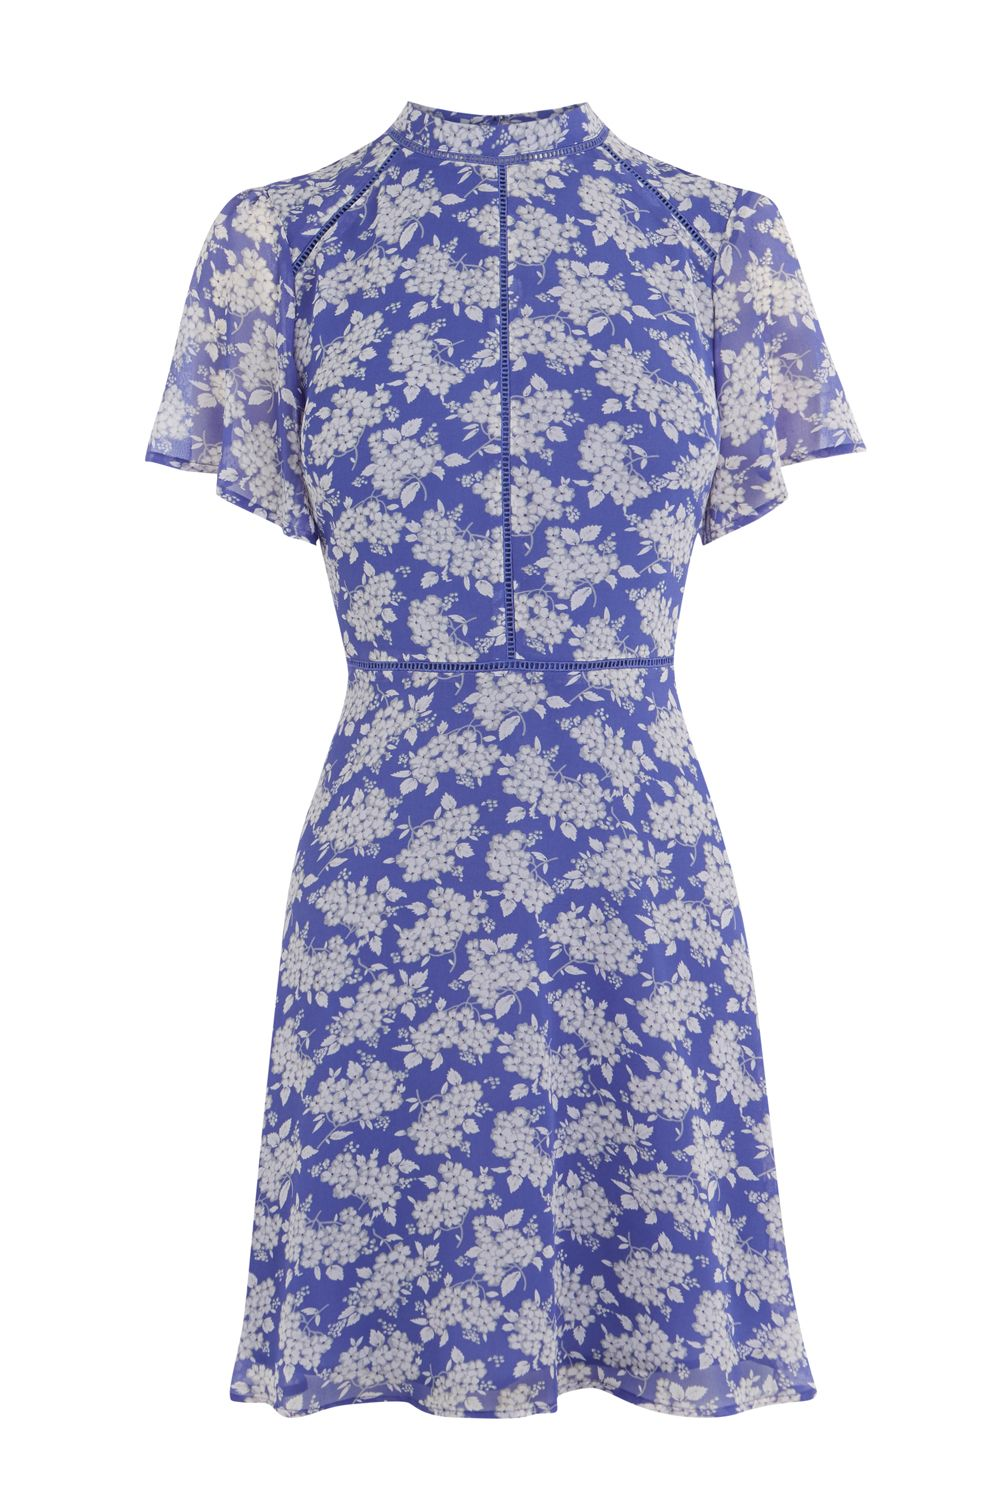 Oasis Provence ditsy dress, Blue Multi